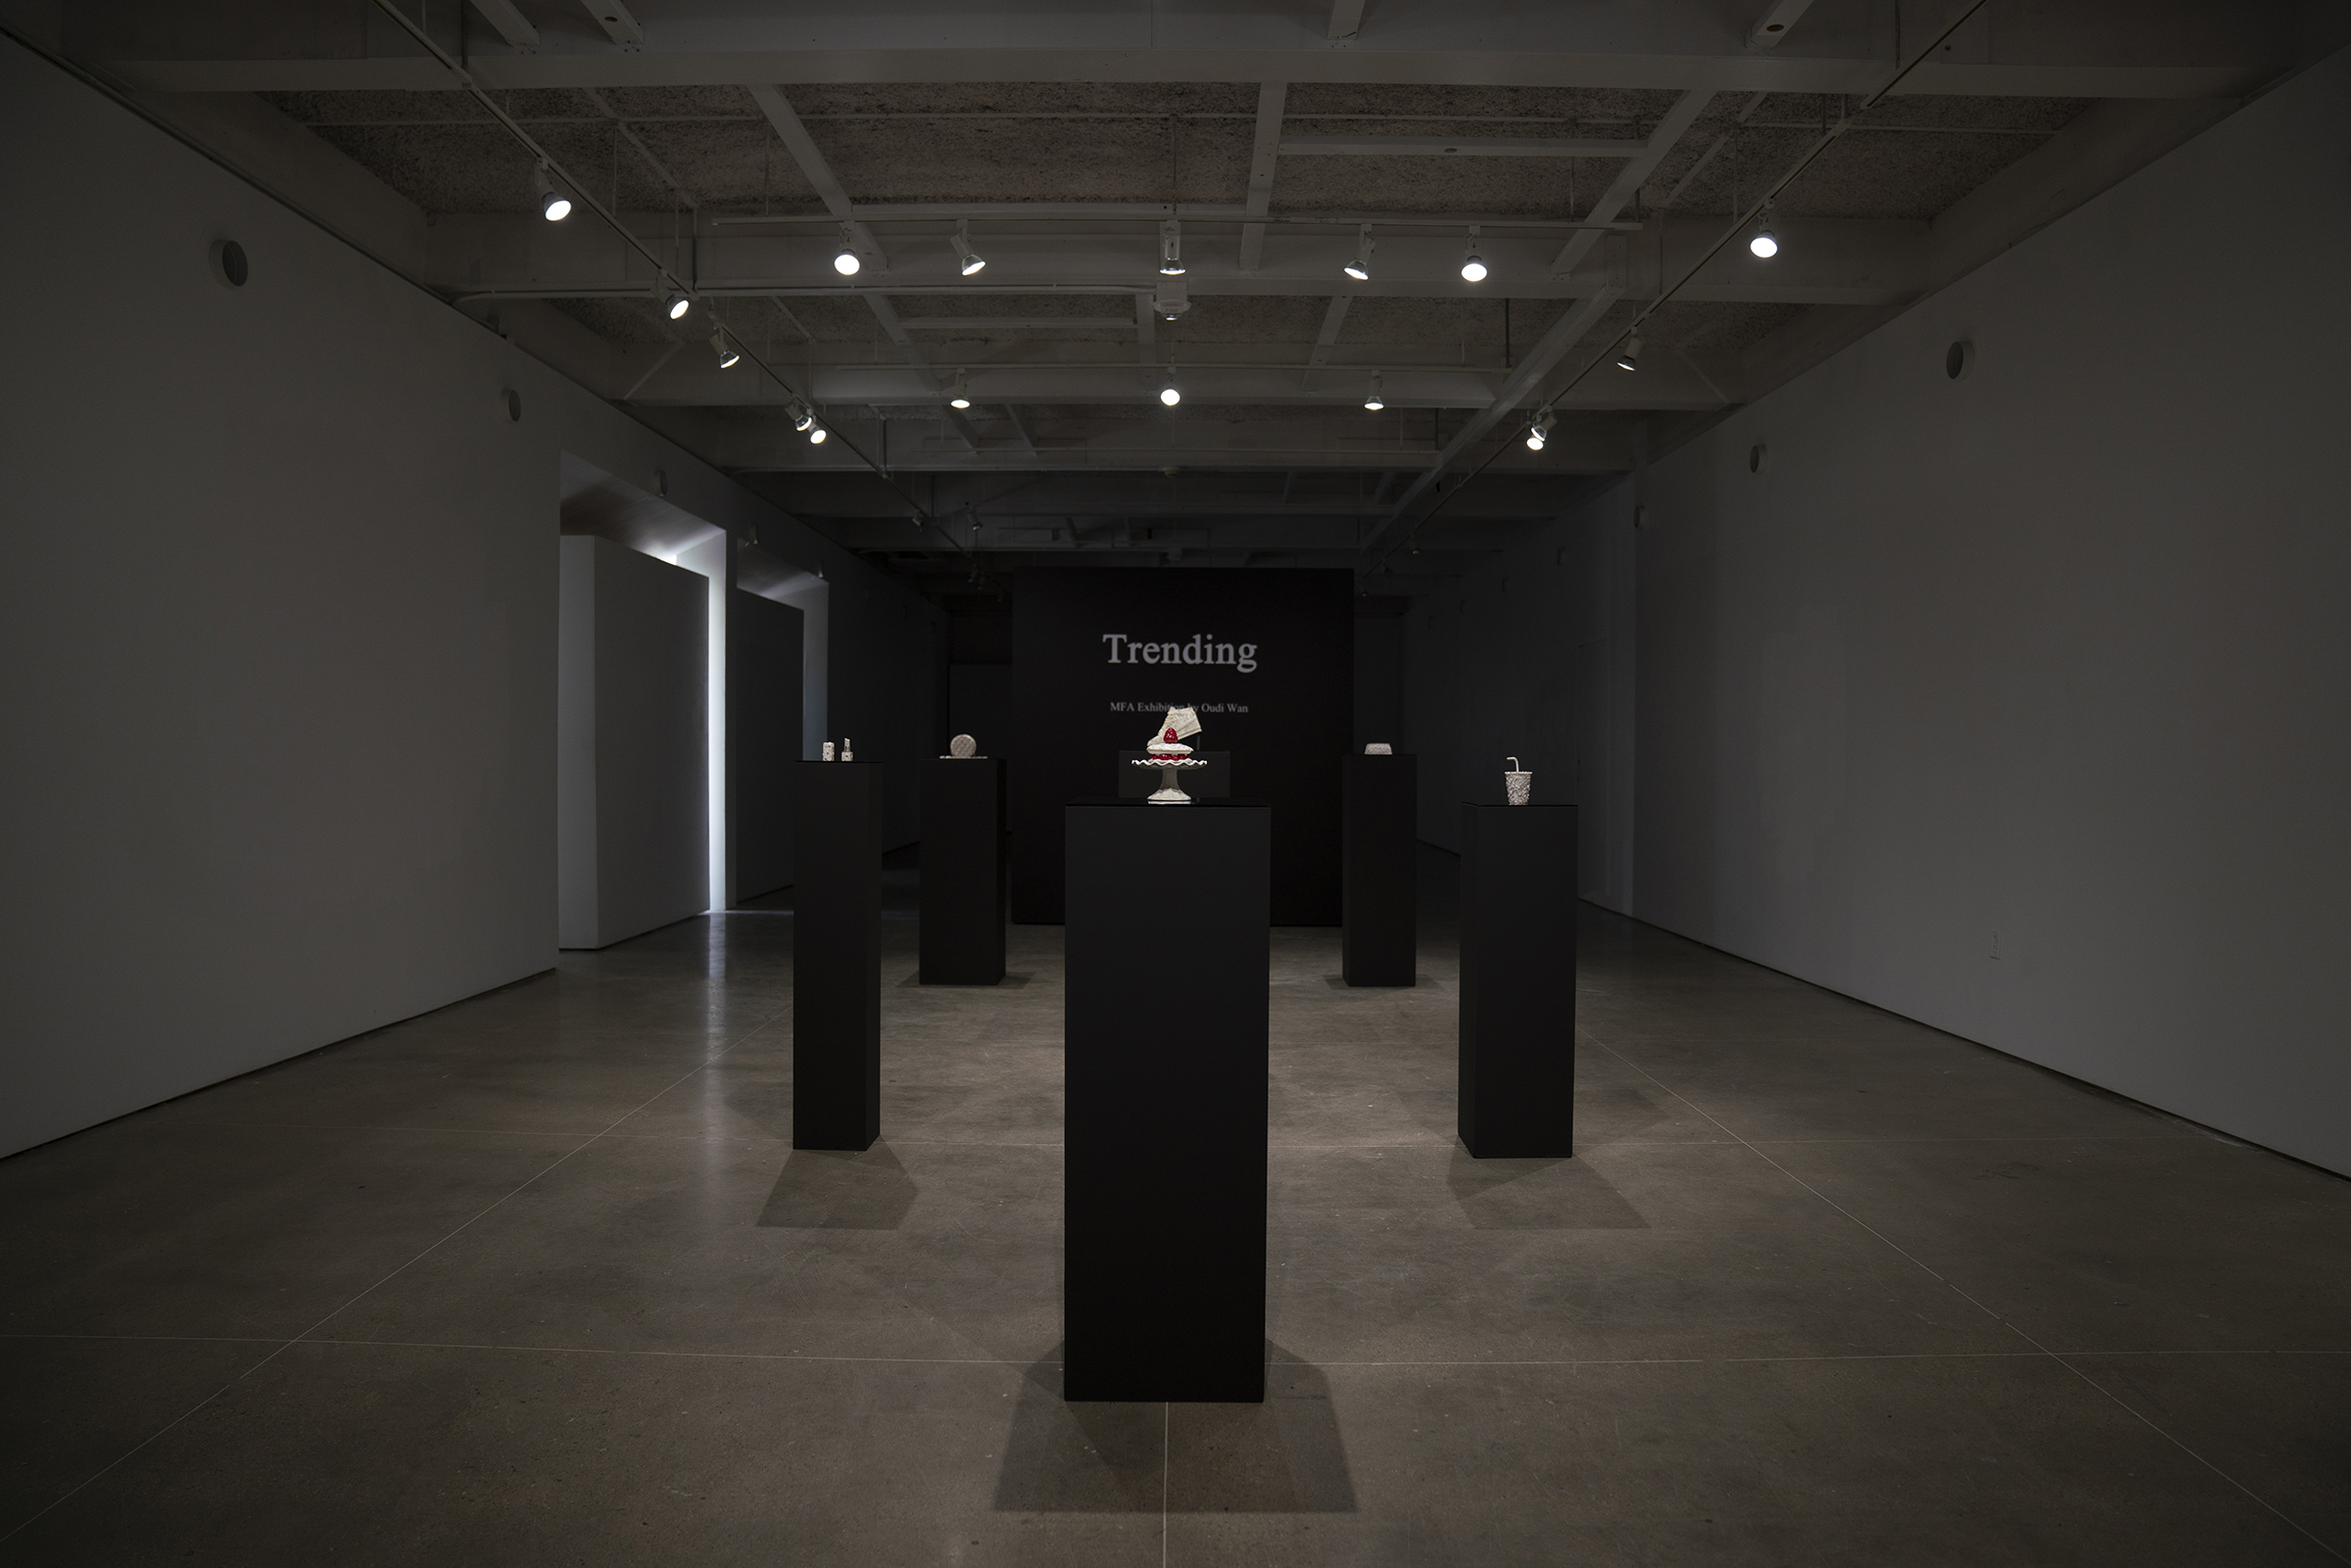 Installation view of Trending Master of Fine Arts Exhibition by Oudi Wan at Gallery 7, Humanities Building, University of Wisconsin-Madison.